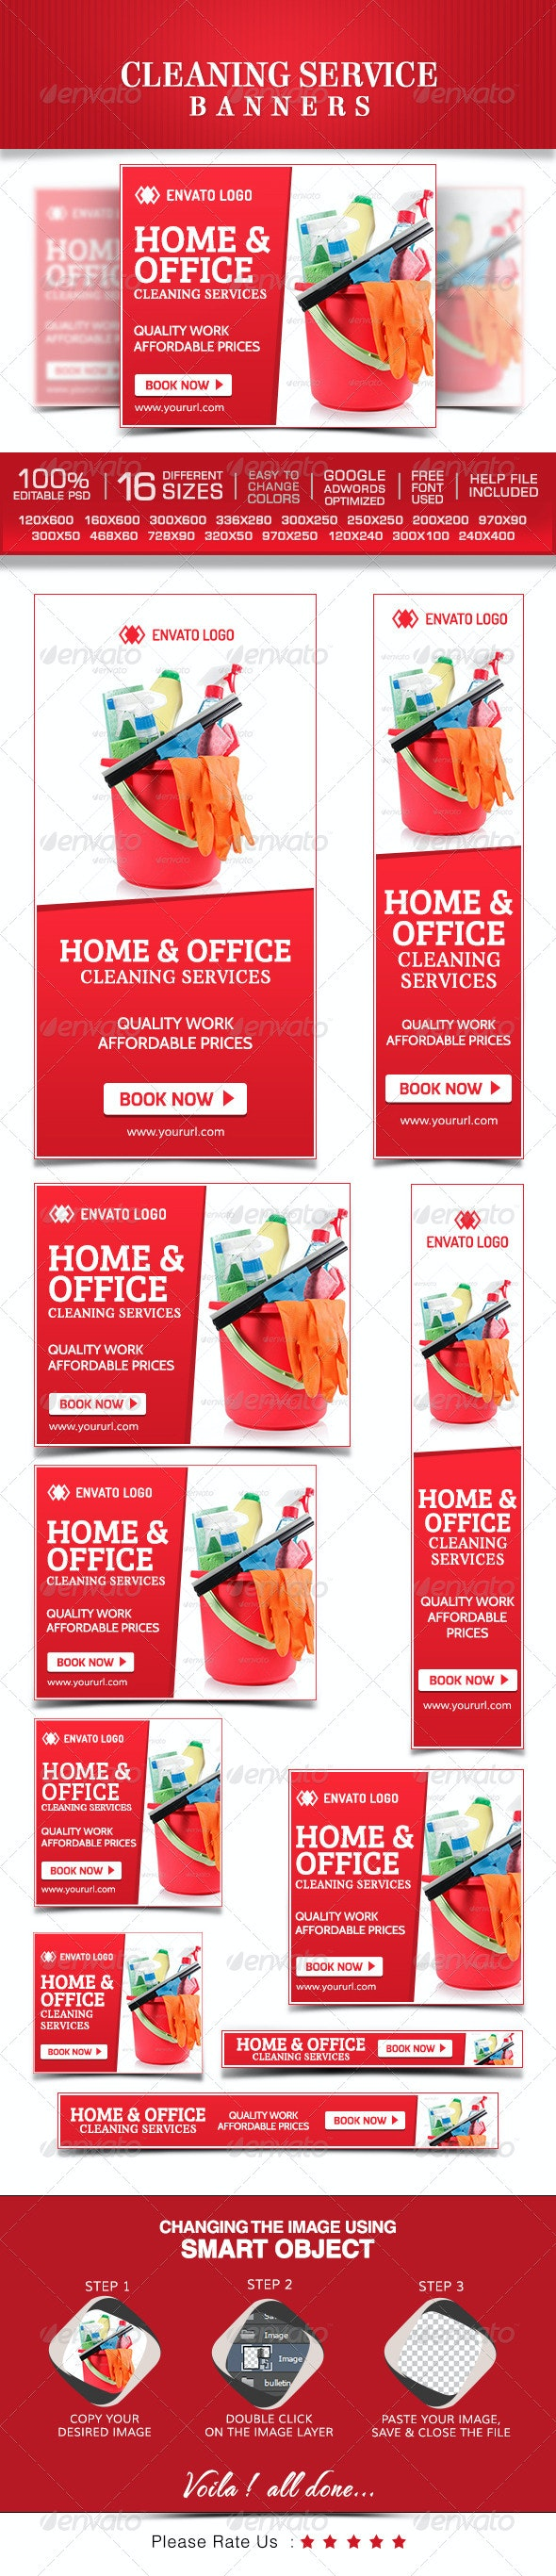 Cleaning Service Banner Design Set - Banners & Ads Web Elements